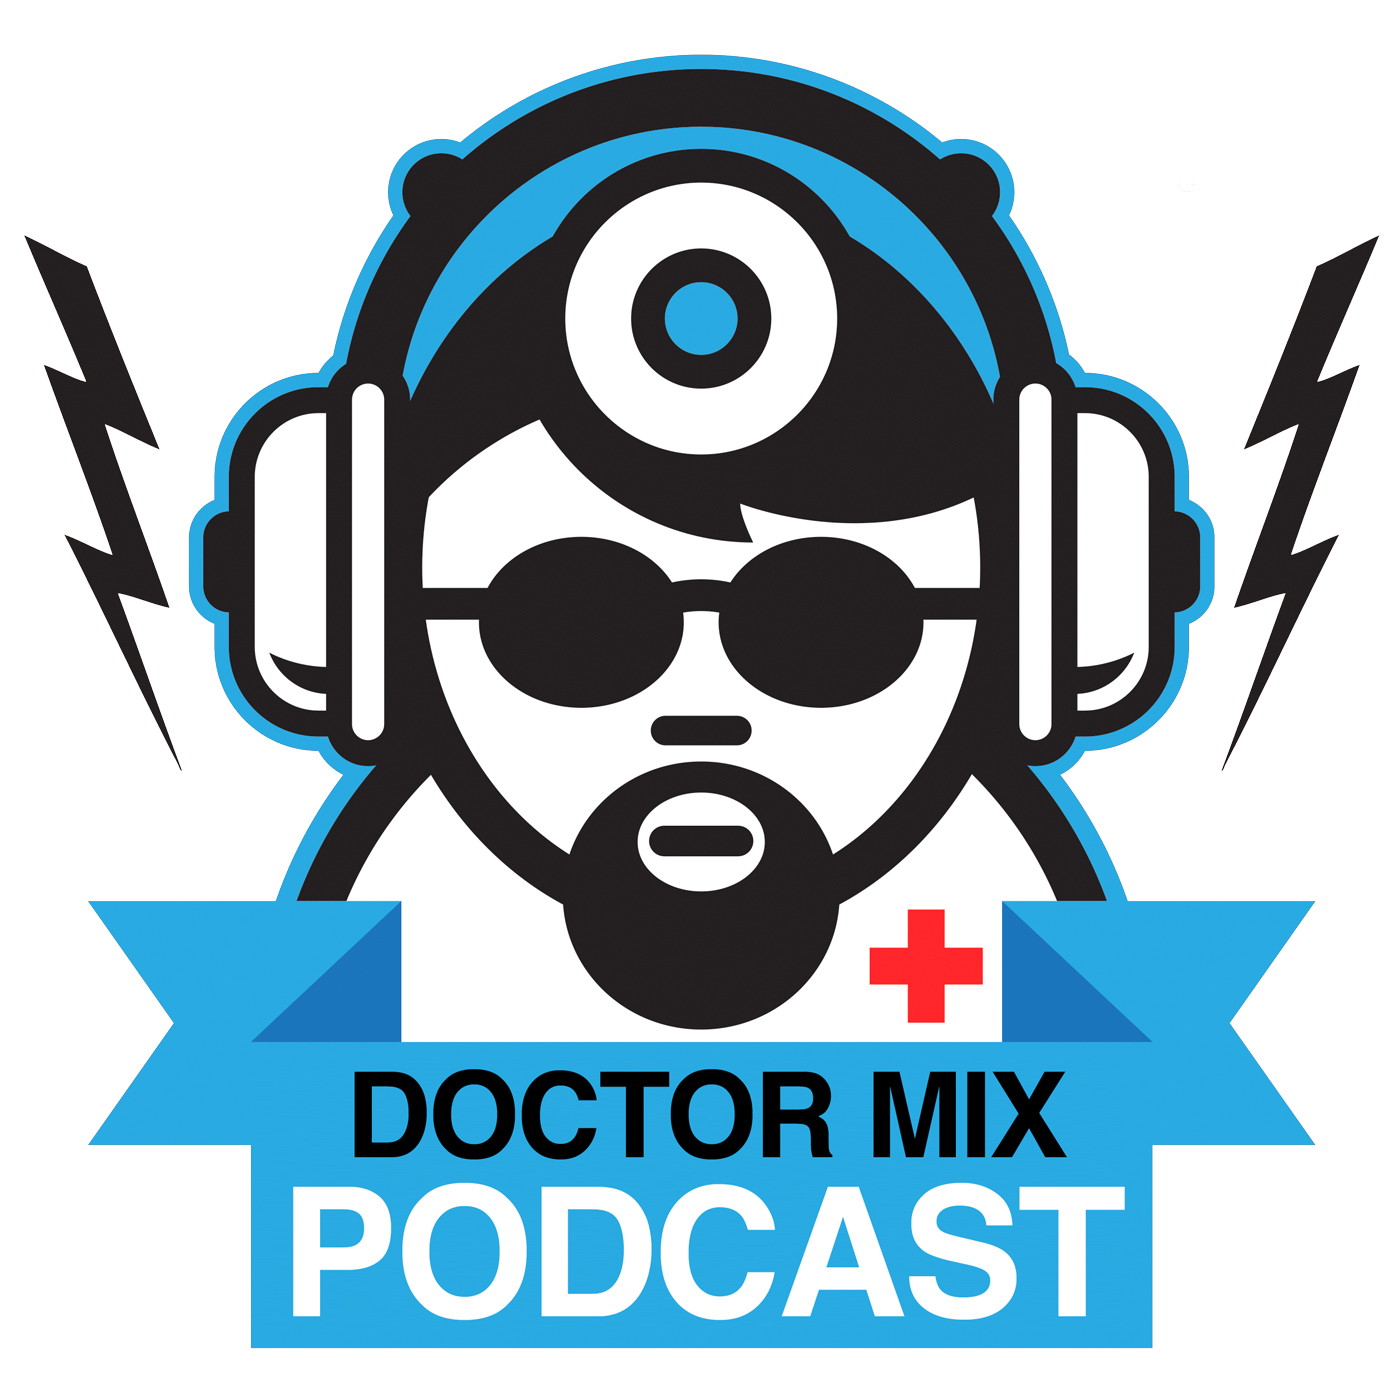 Doctor Mix Podcast